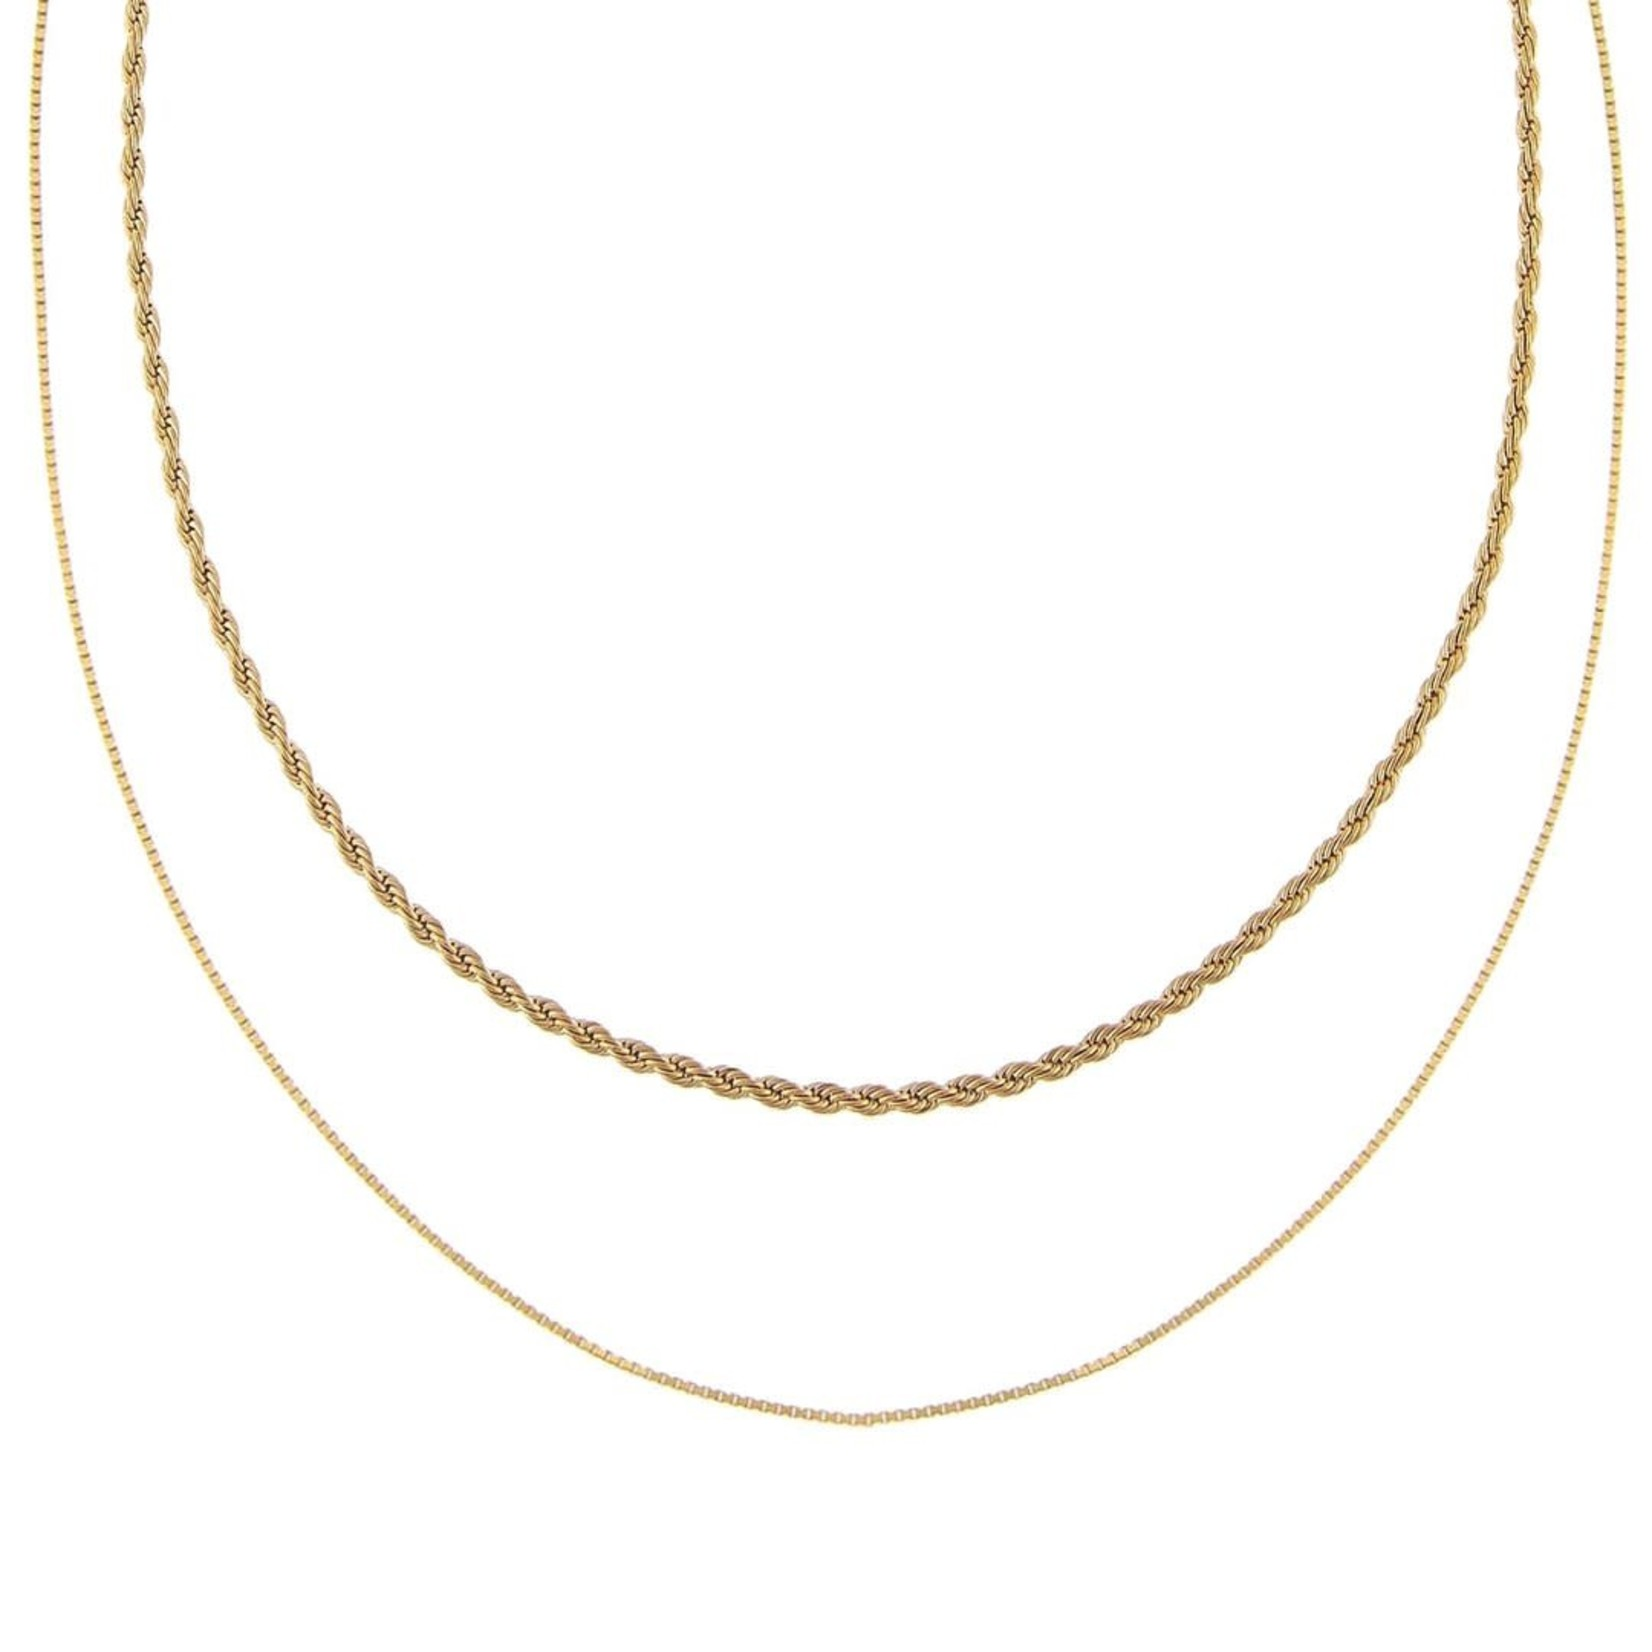 Adinas Double Chain Rope X Box Necklace